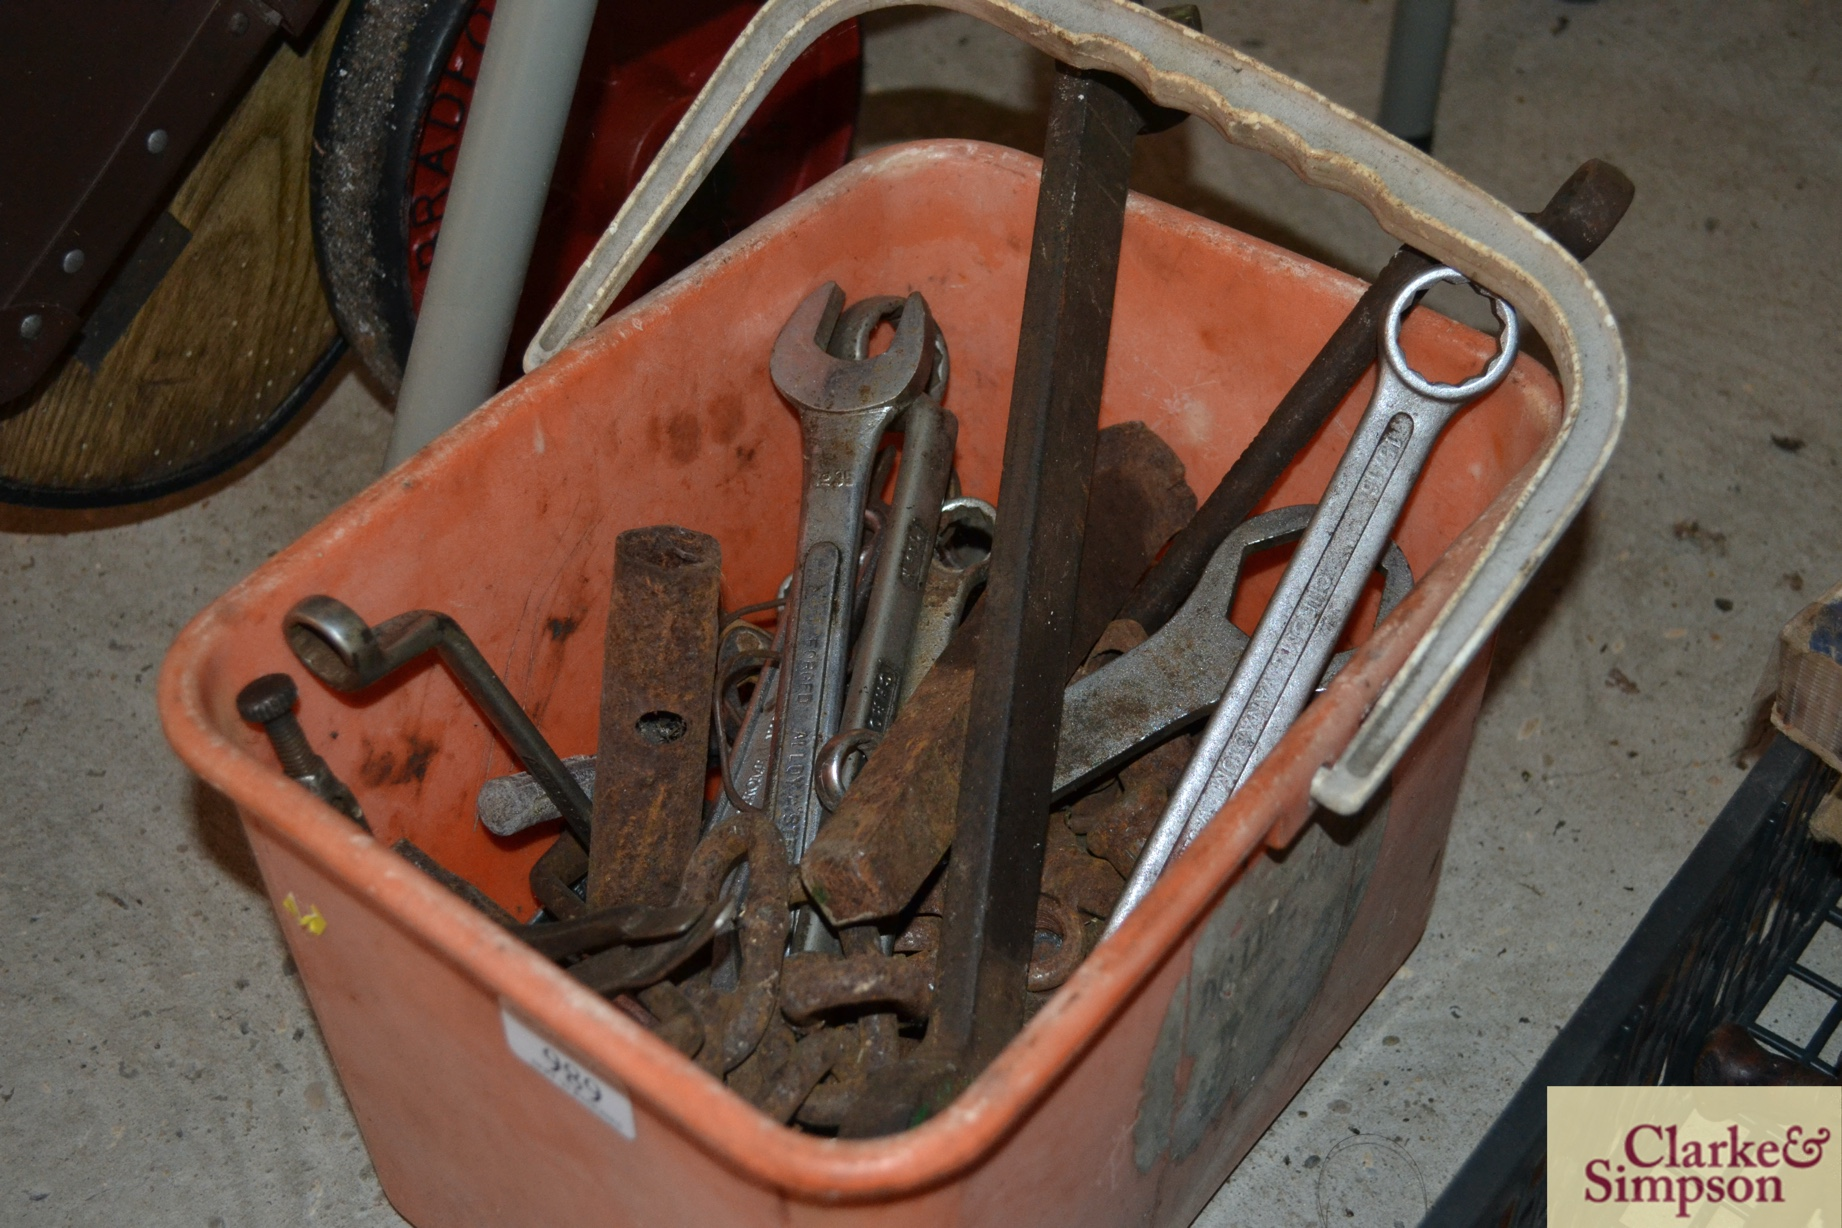 A bucket of various tools and a canvas bag of tool - Image 3 of 3